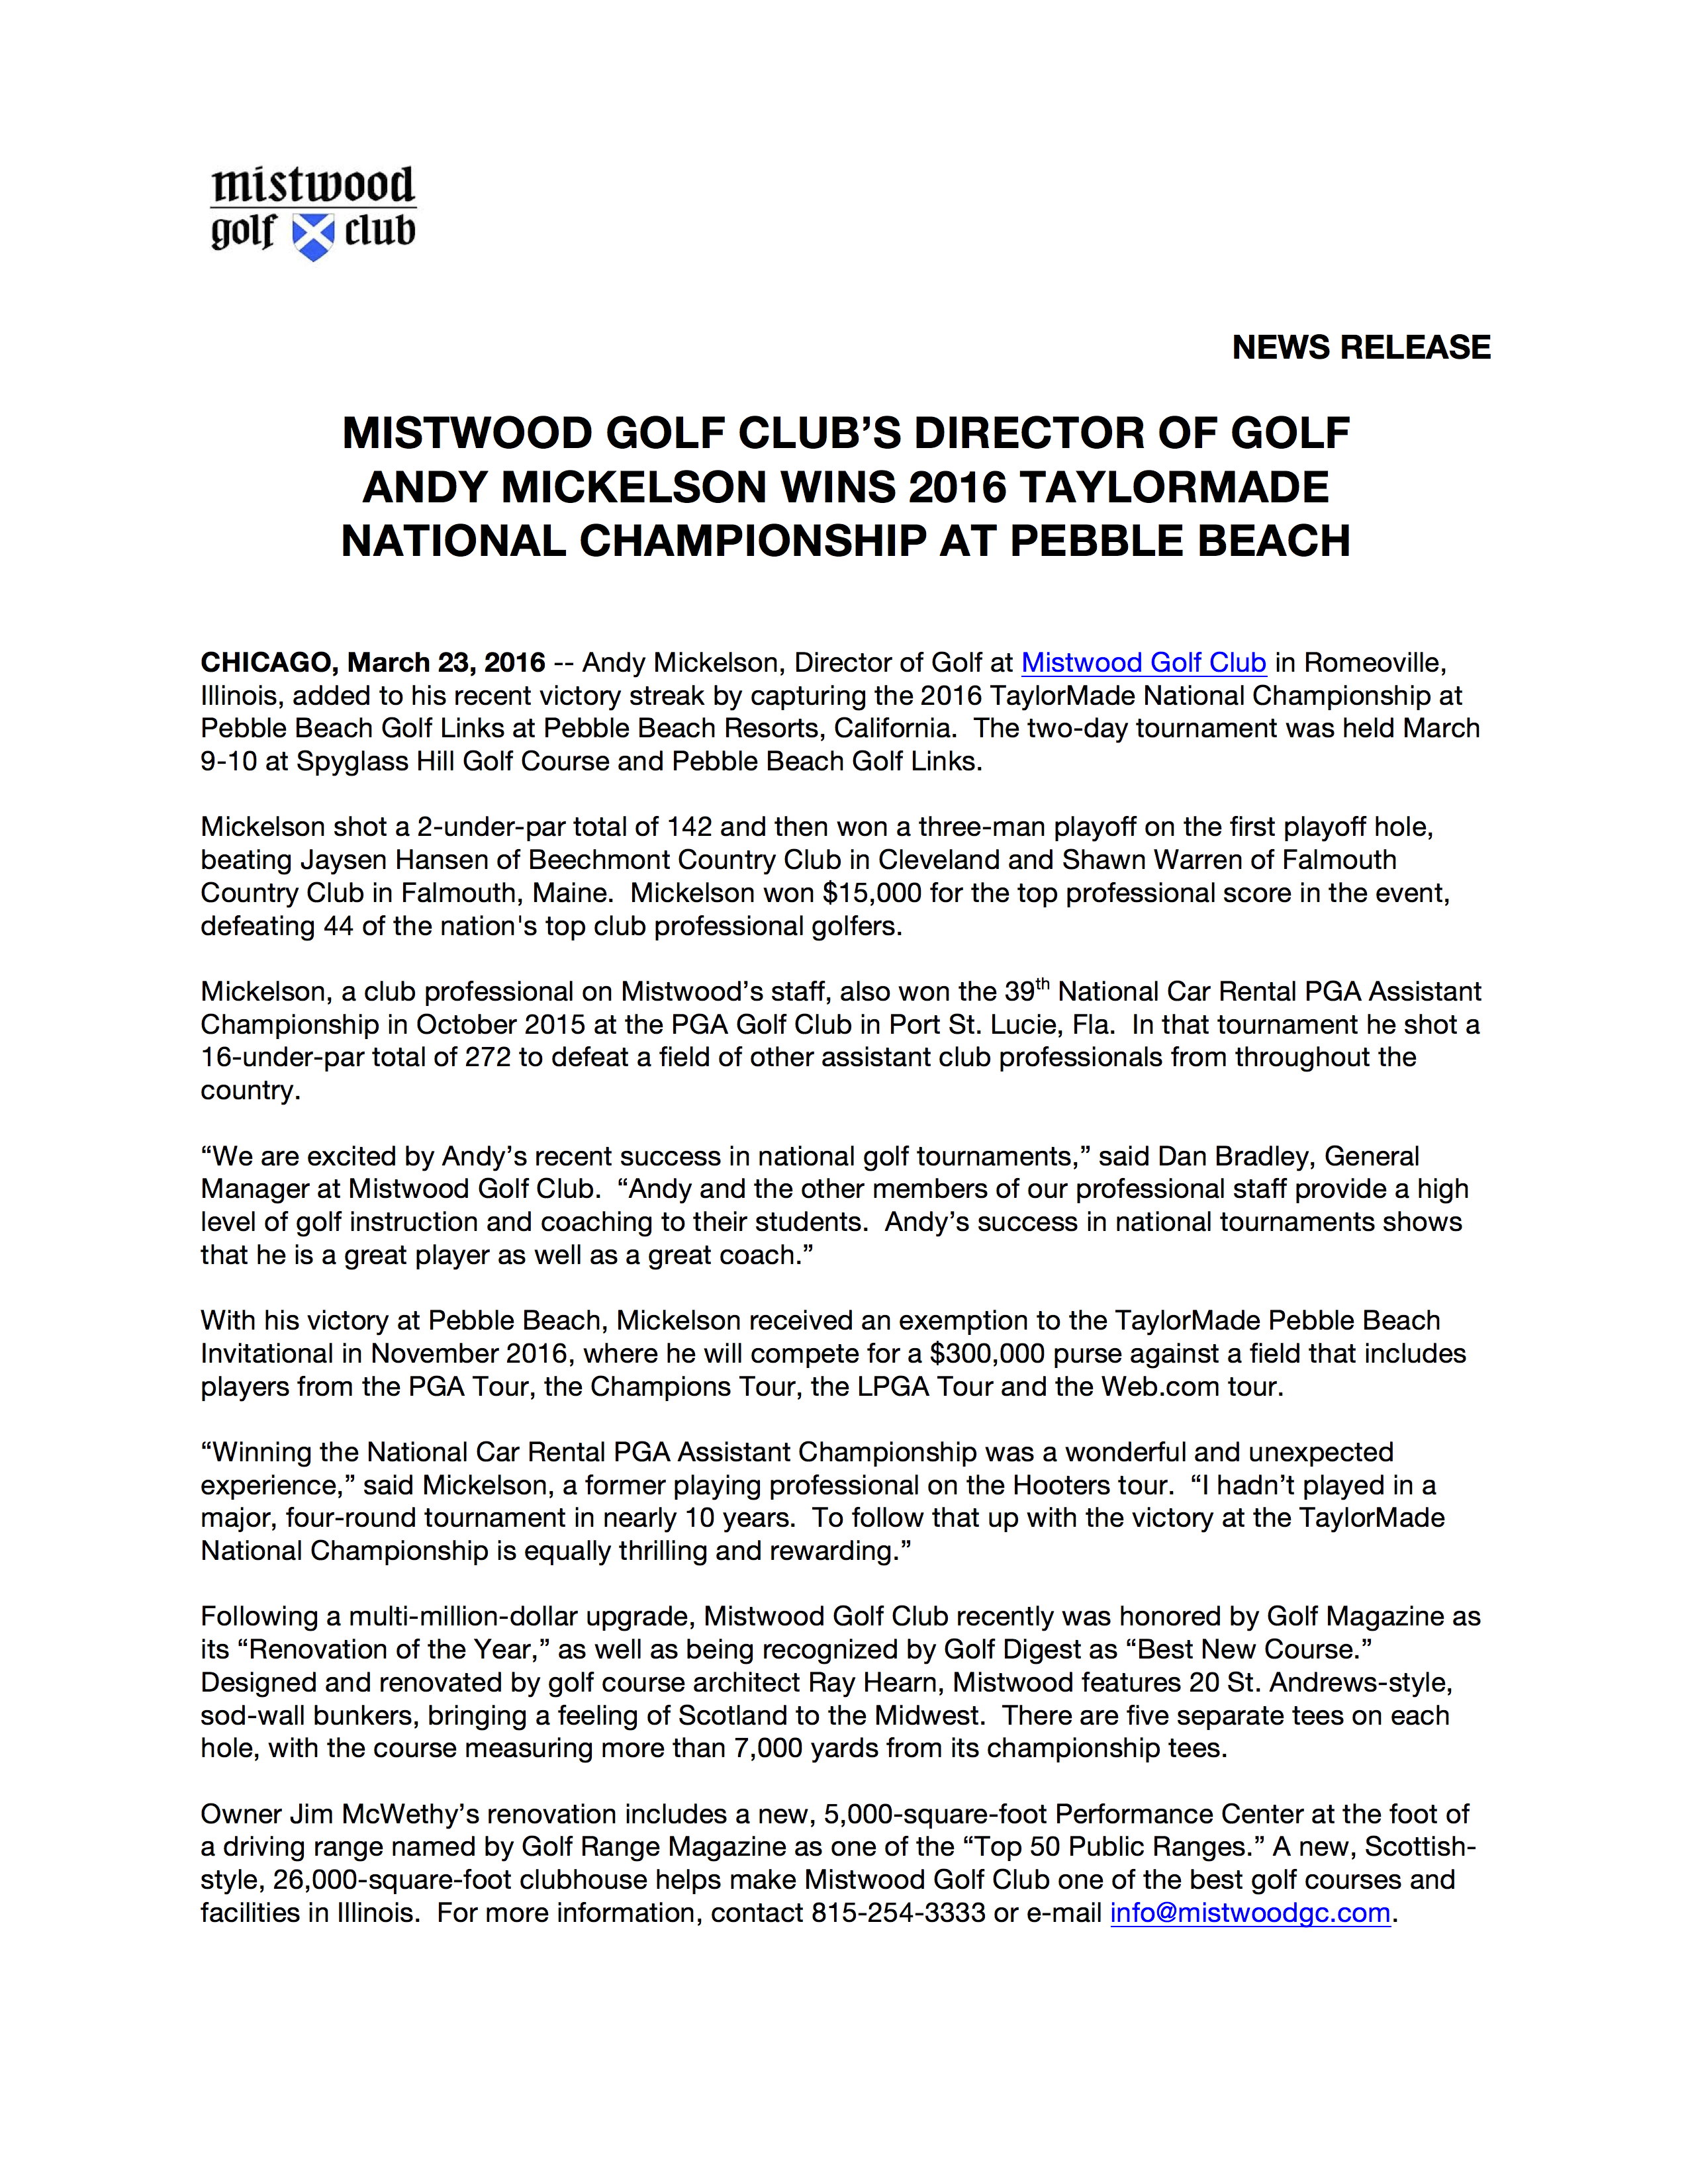 Mistwood Mickelson Wins at Pebble Beach Release FINAL